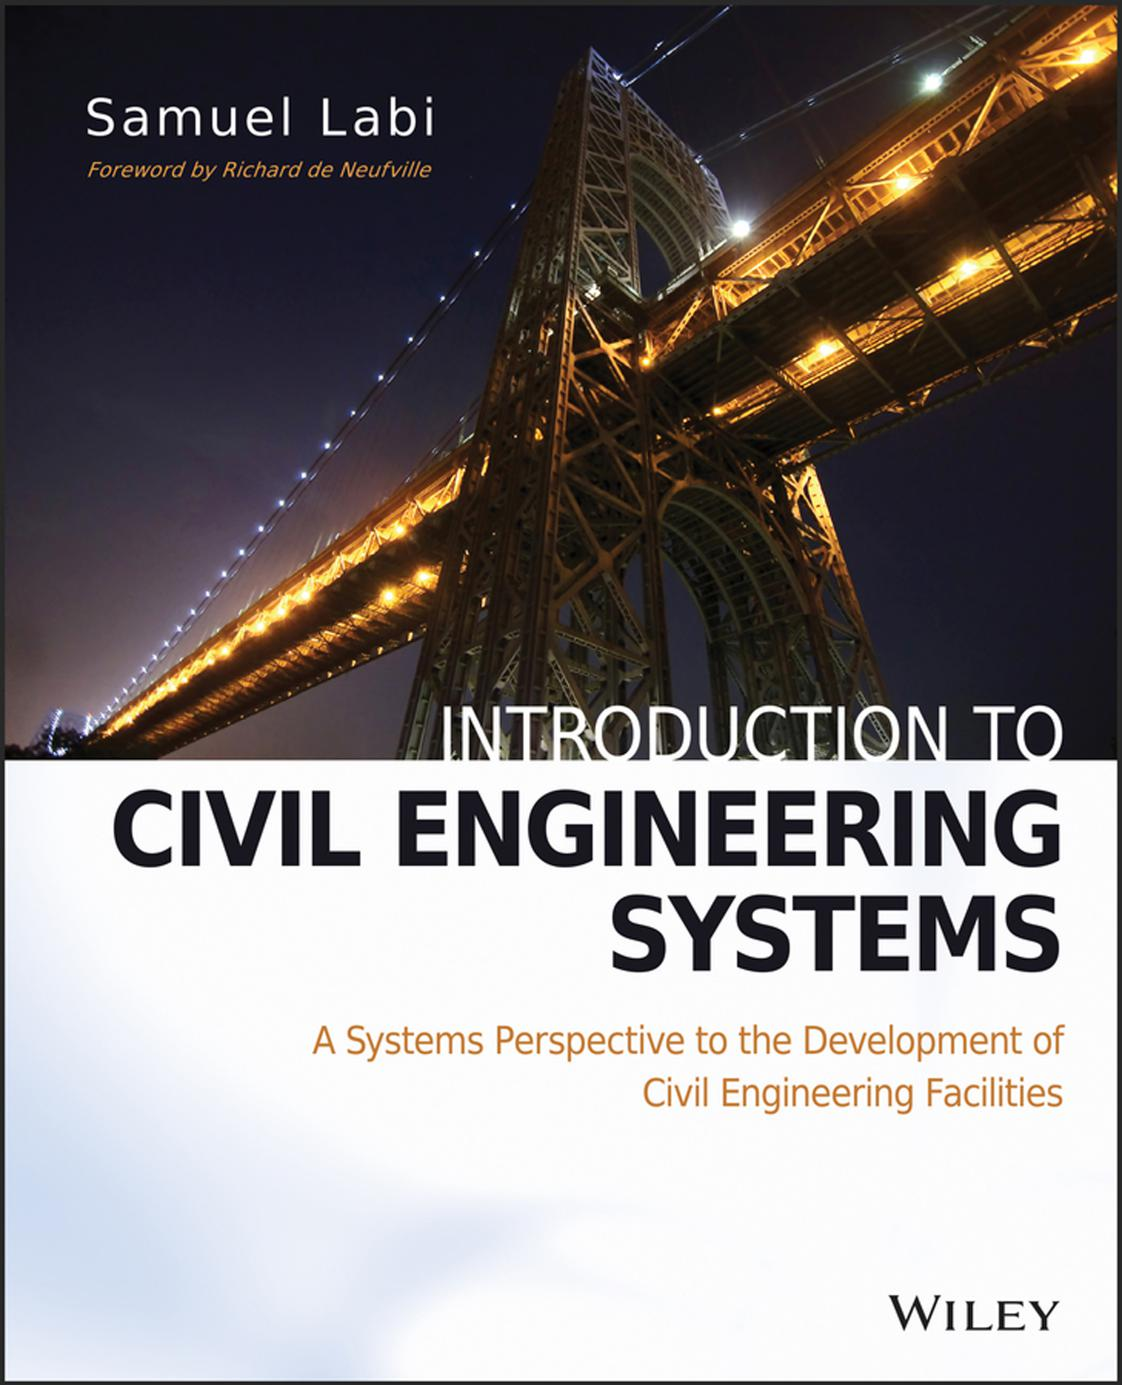 Introduction to Civil Engineering Systems: A Systems Perspective to the Development of Civil Engineering Facilities free download